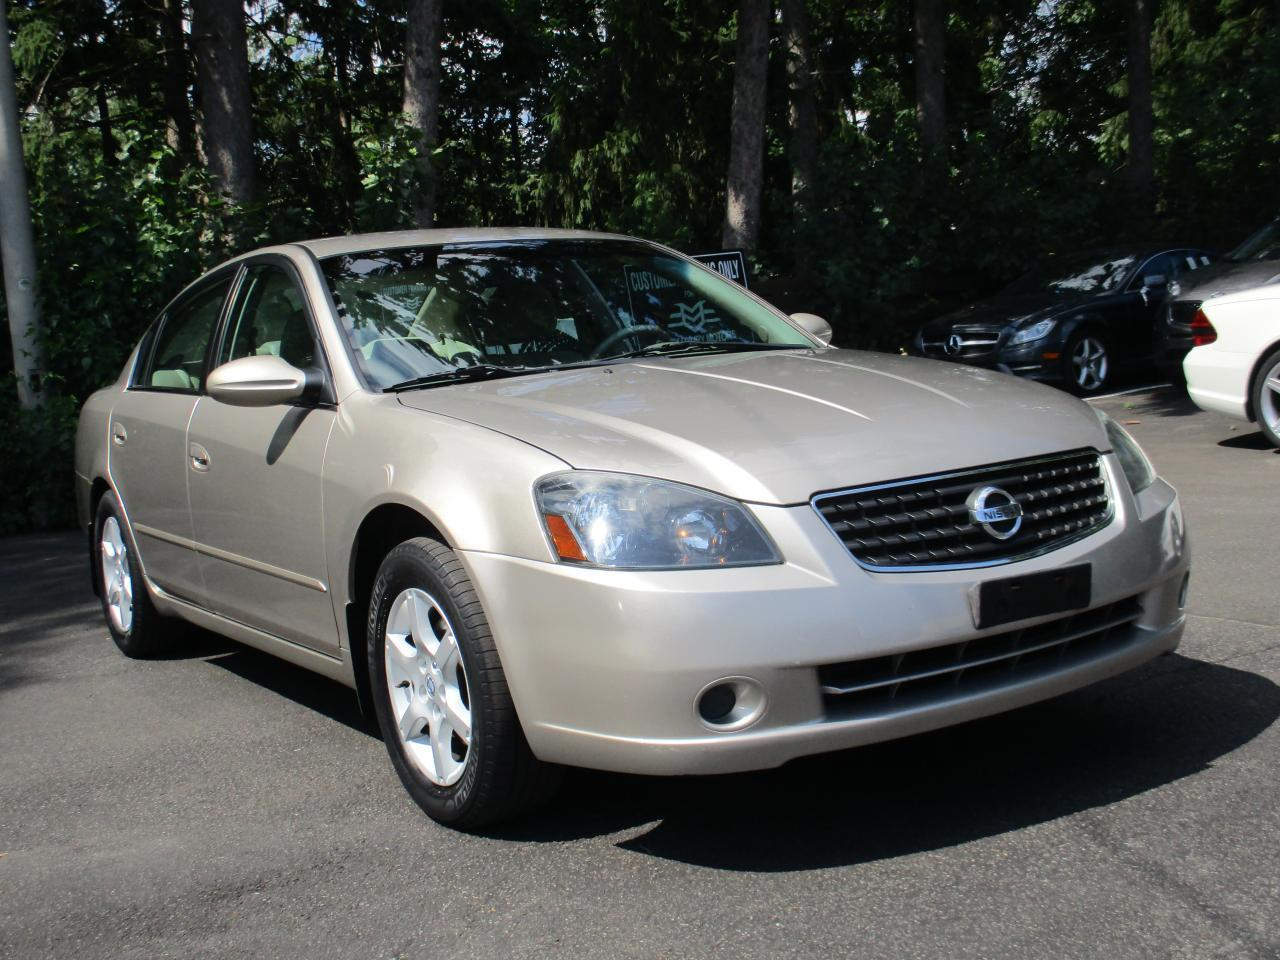 used 2006 nissan altima 2.5 s --------------- trade in special automatic for sale in burlington, ontario carpages.ca